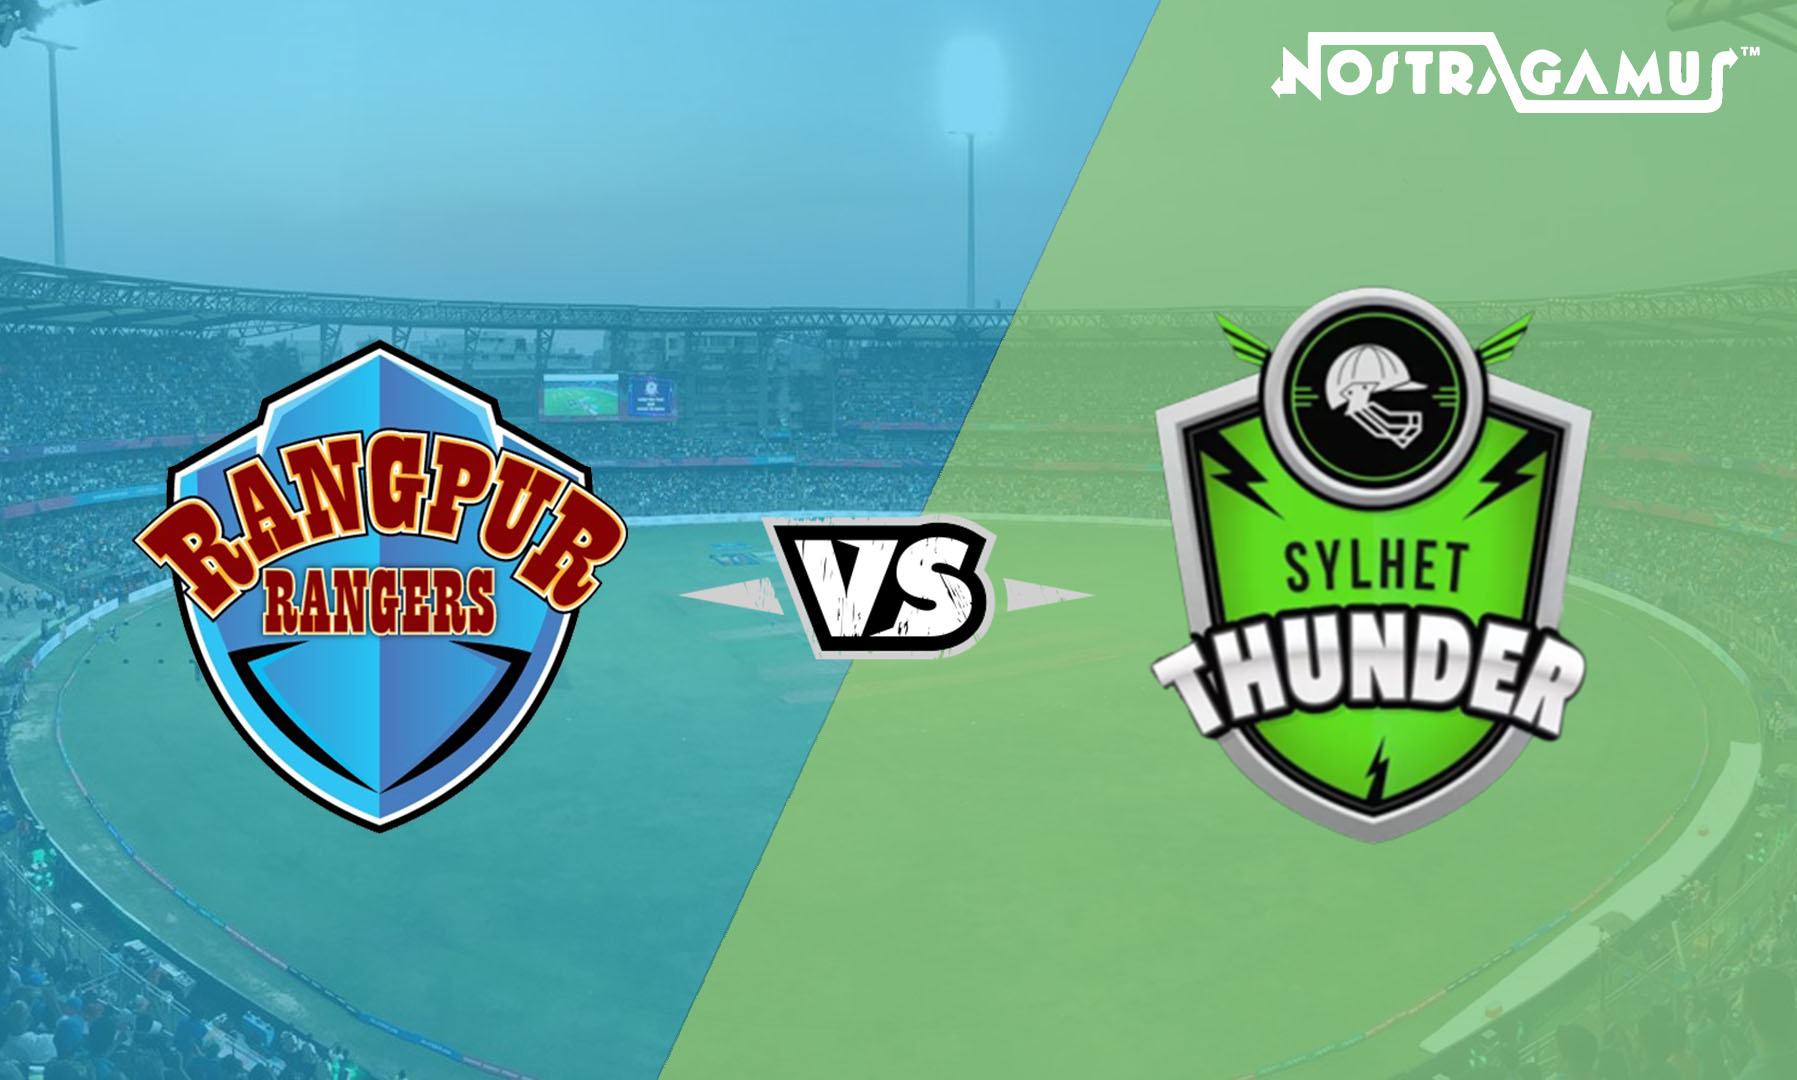 BPL 2019 Match Prediction: Sylhet Thunder vs Rangpur Rangers